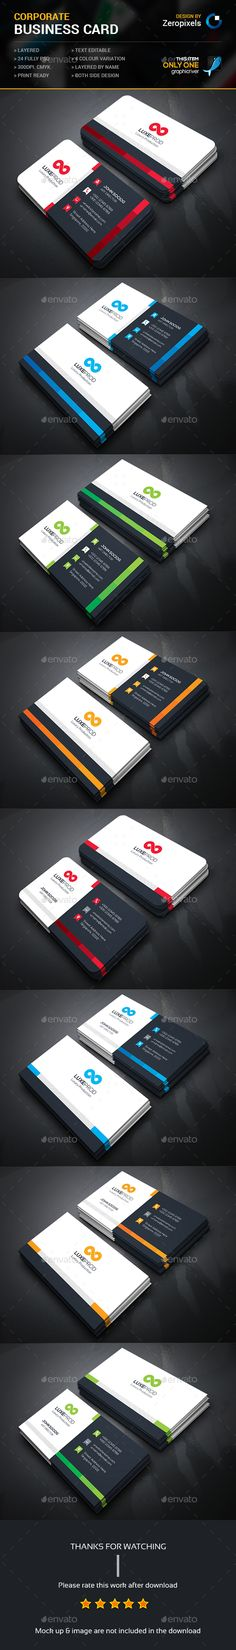 Corporate Business Card Bundle Templates PSD. Download here: http://graphicriver.net/item/corporate-business-card-bundle/16093646?ref=ksioks